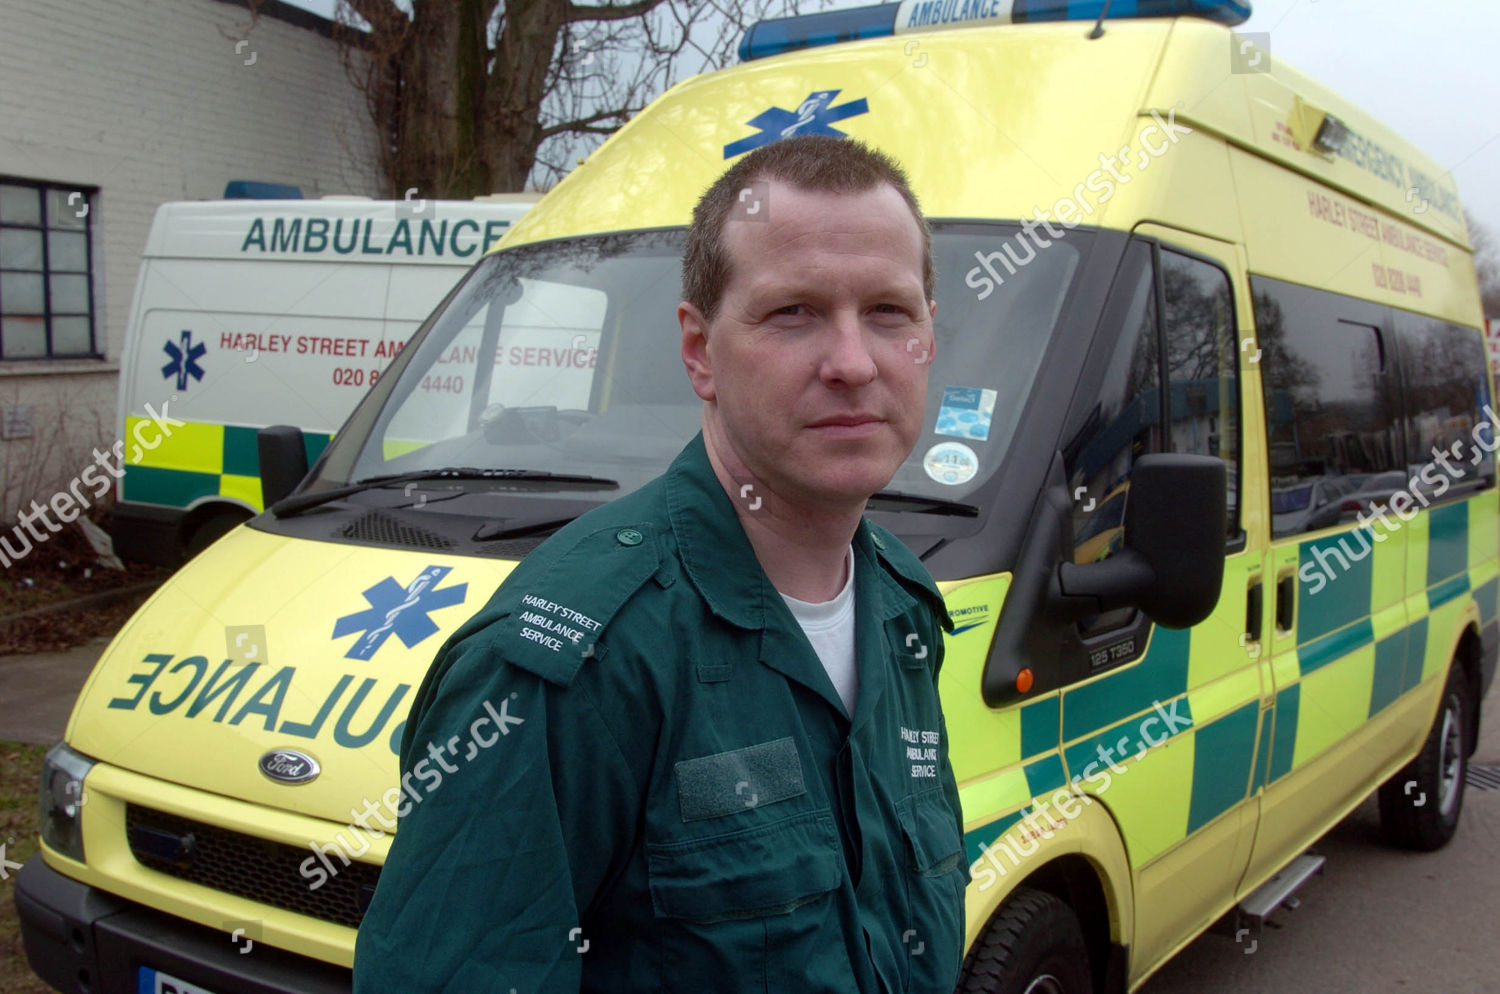 Harley Street Ambulance Service Operations Manager Steve